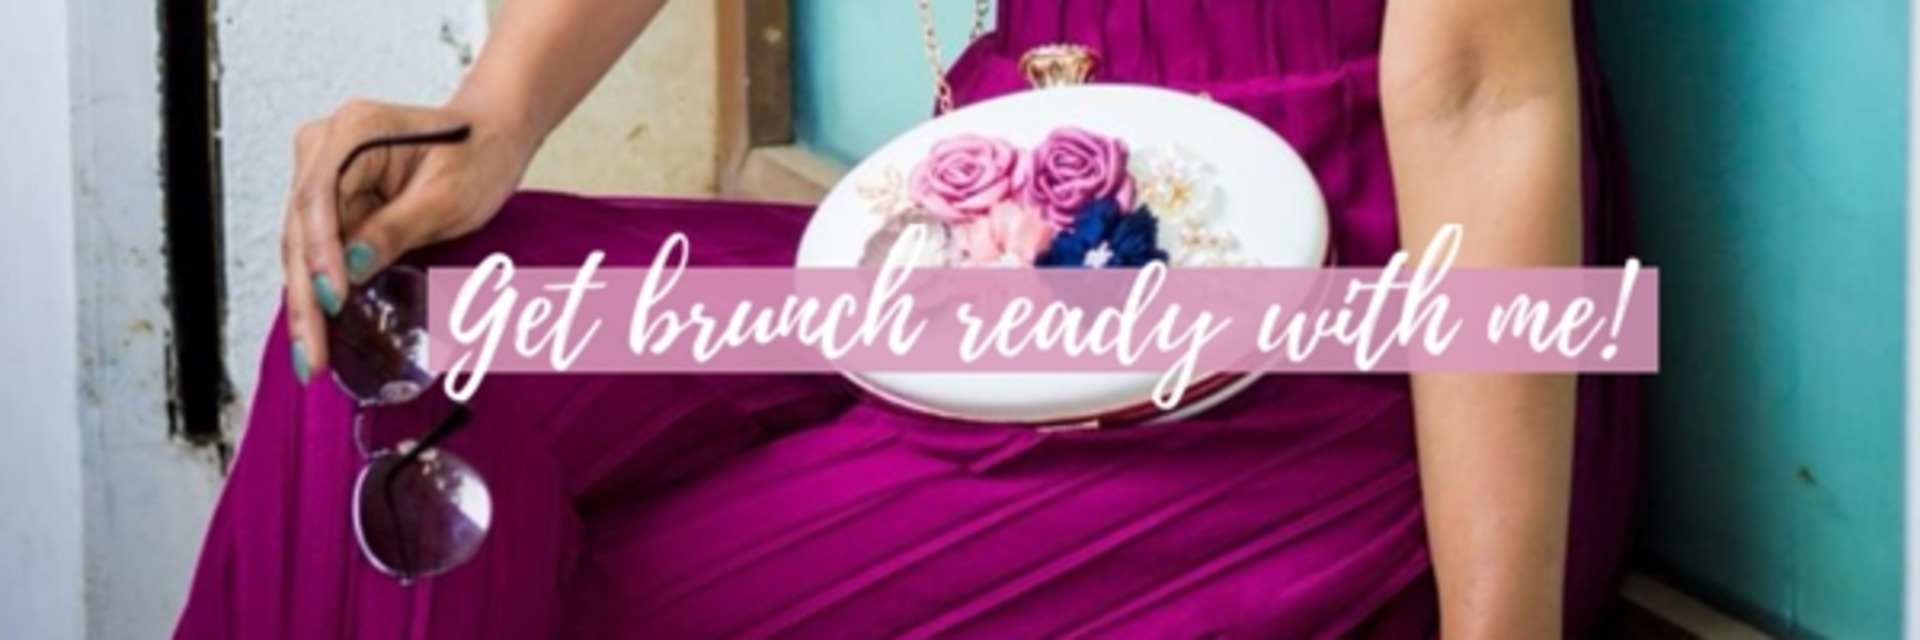 Summer 2018 - Get Brunch Ready with me! image